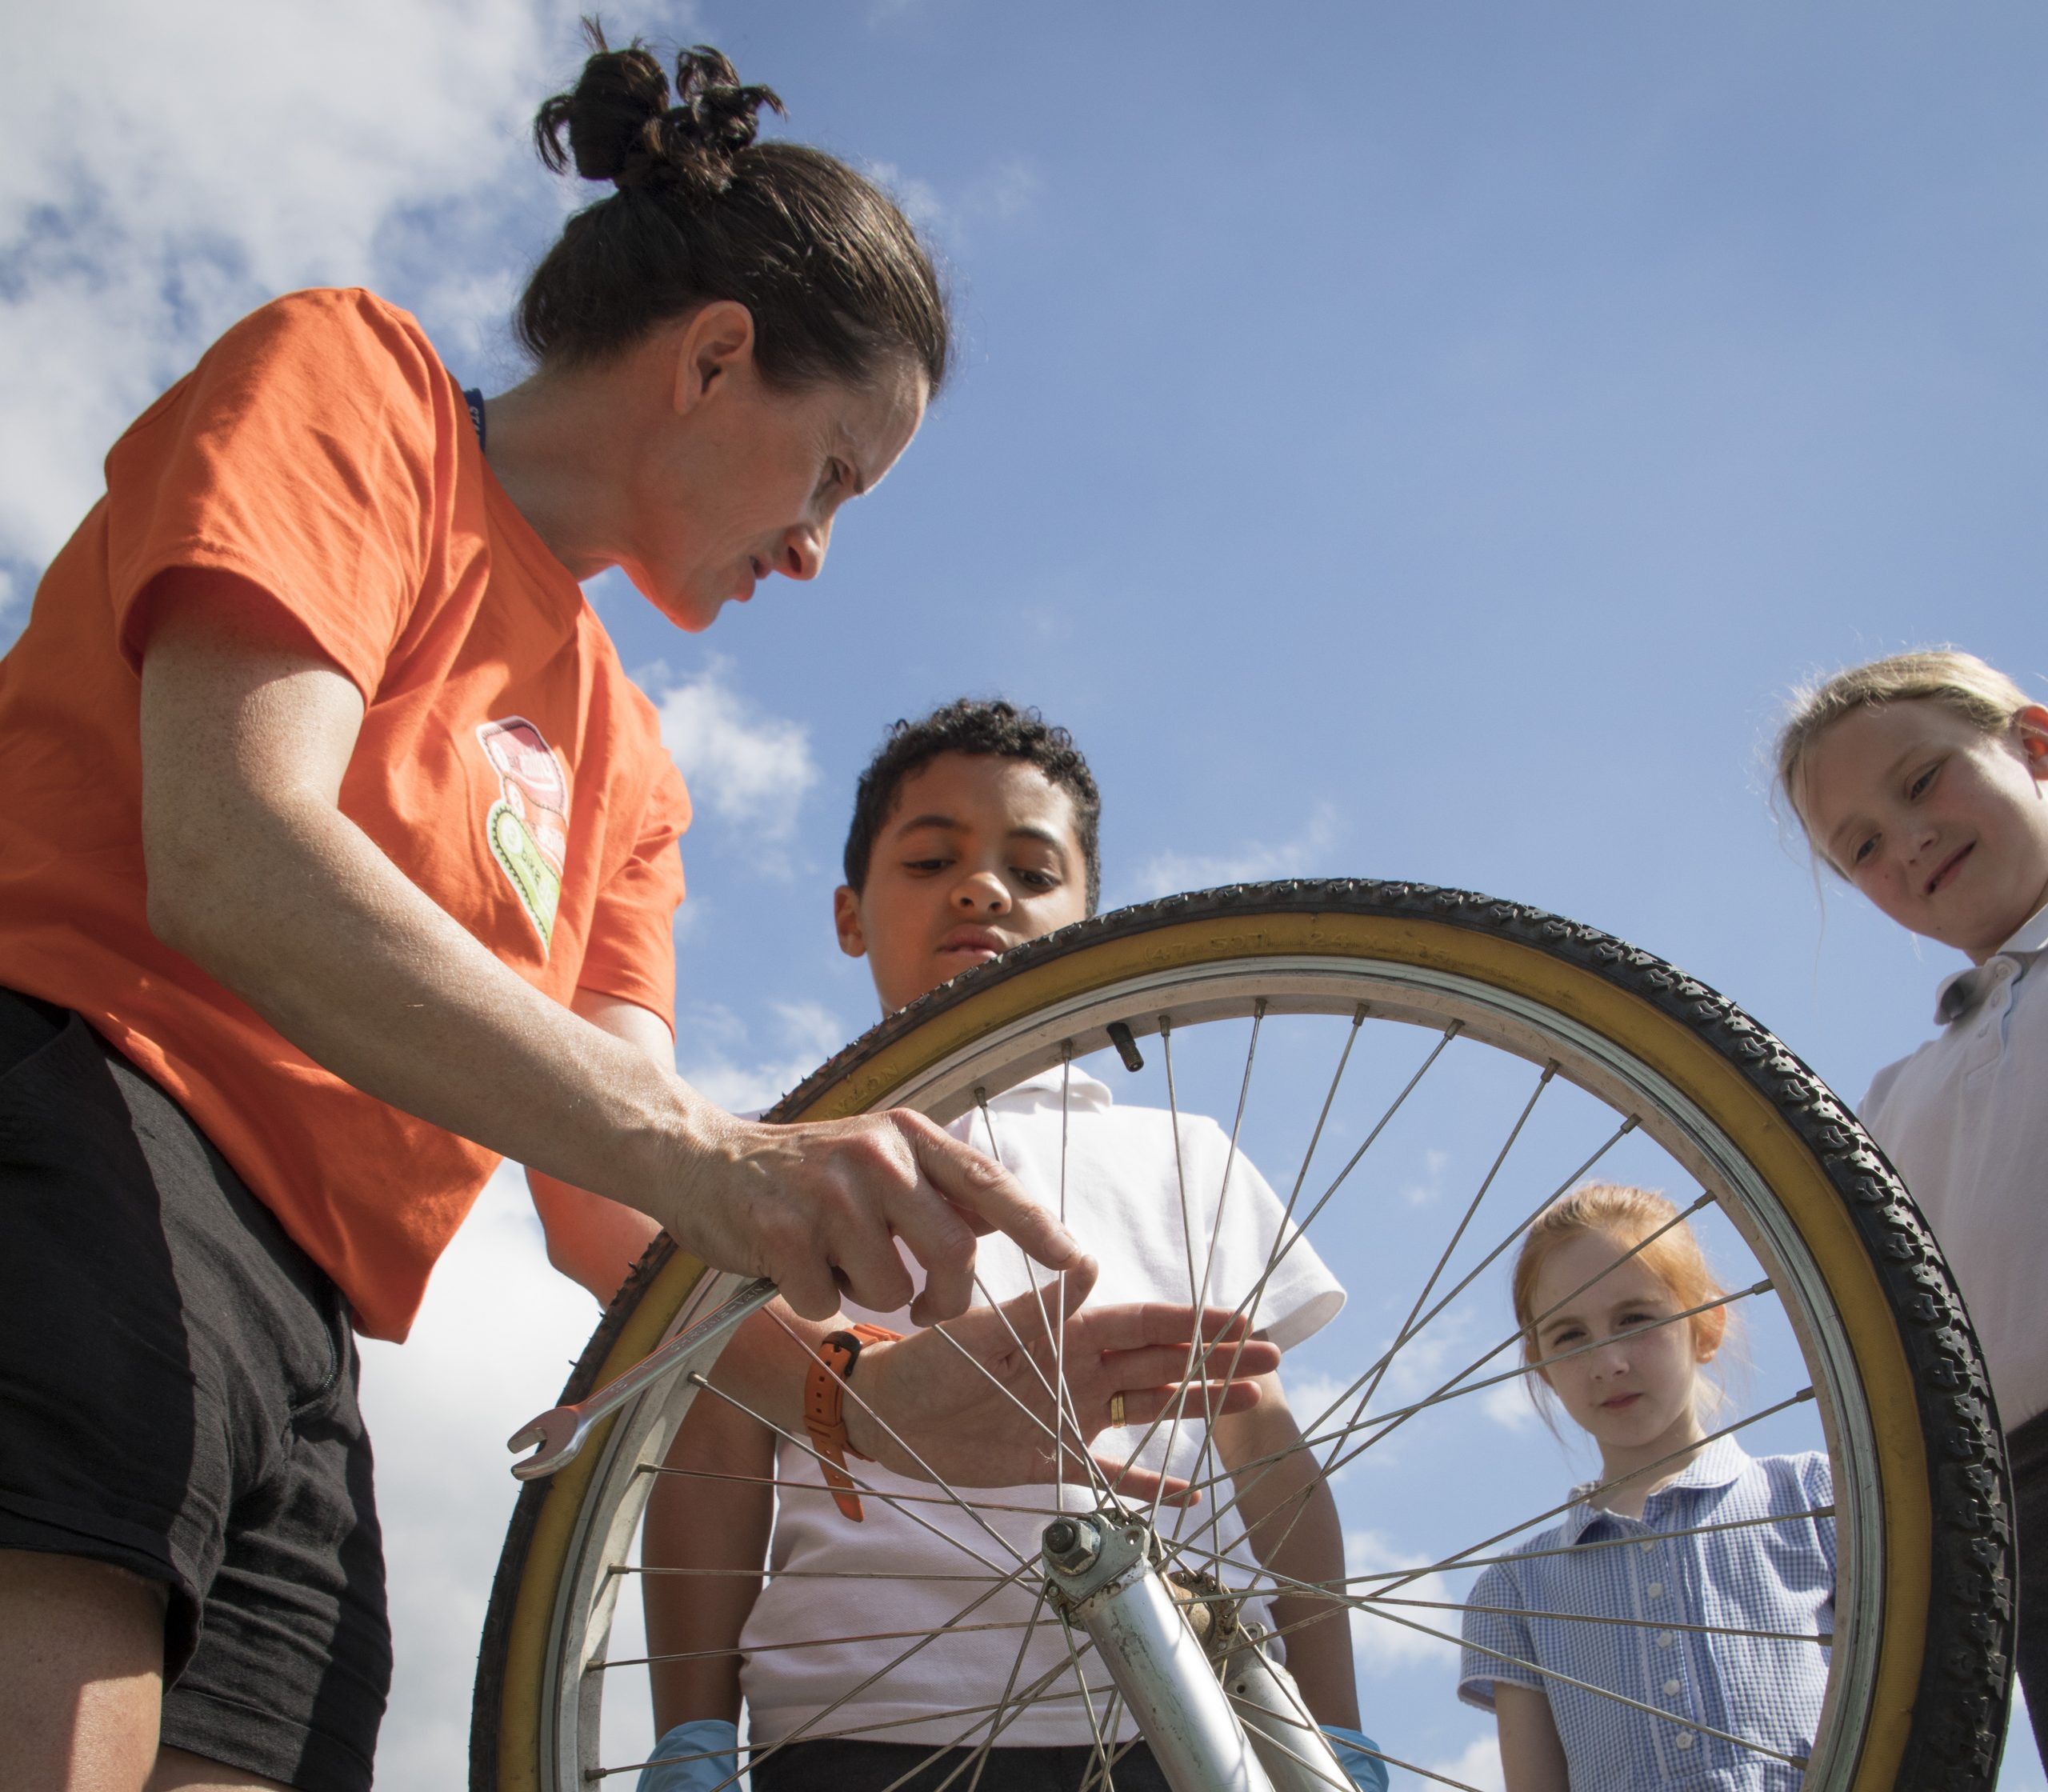 A woman fixes a bike wheel with children looking on